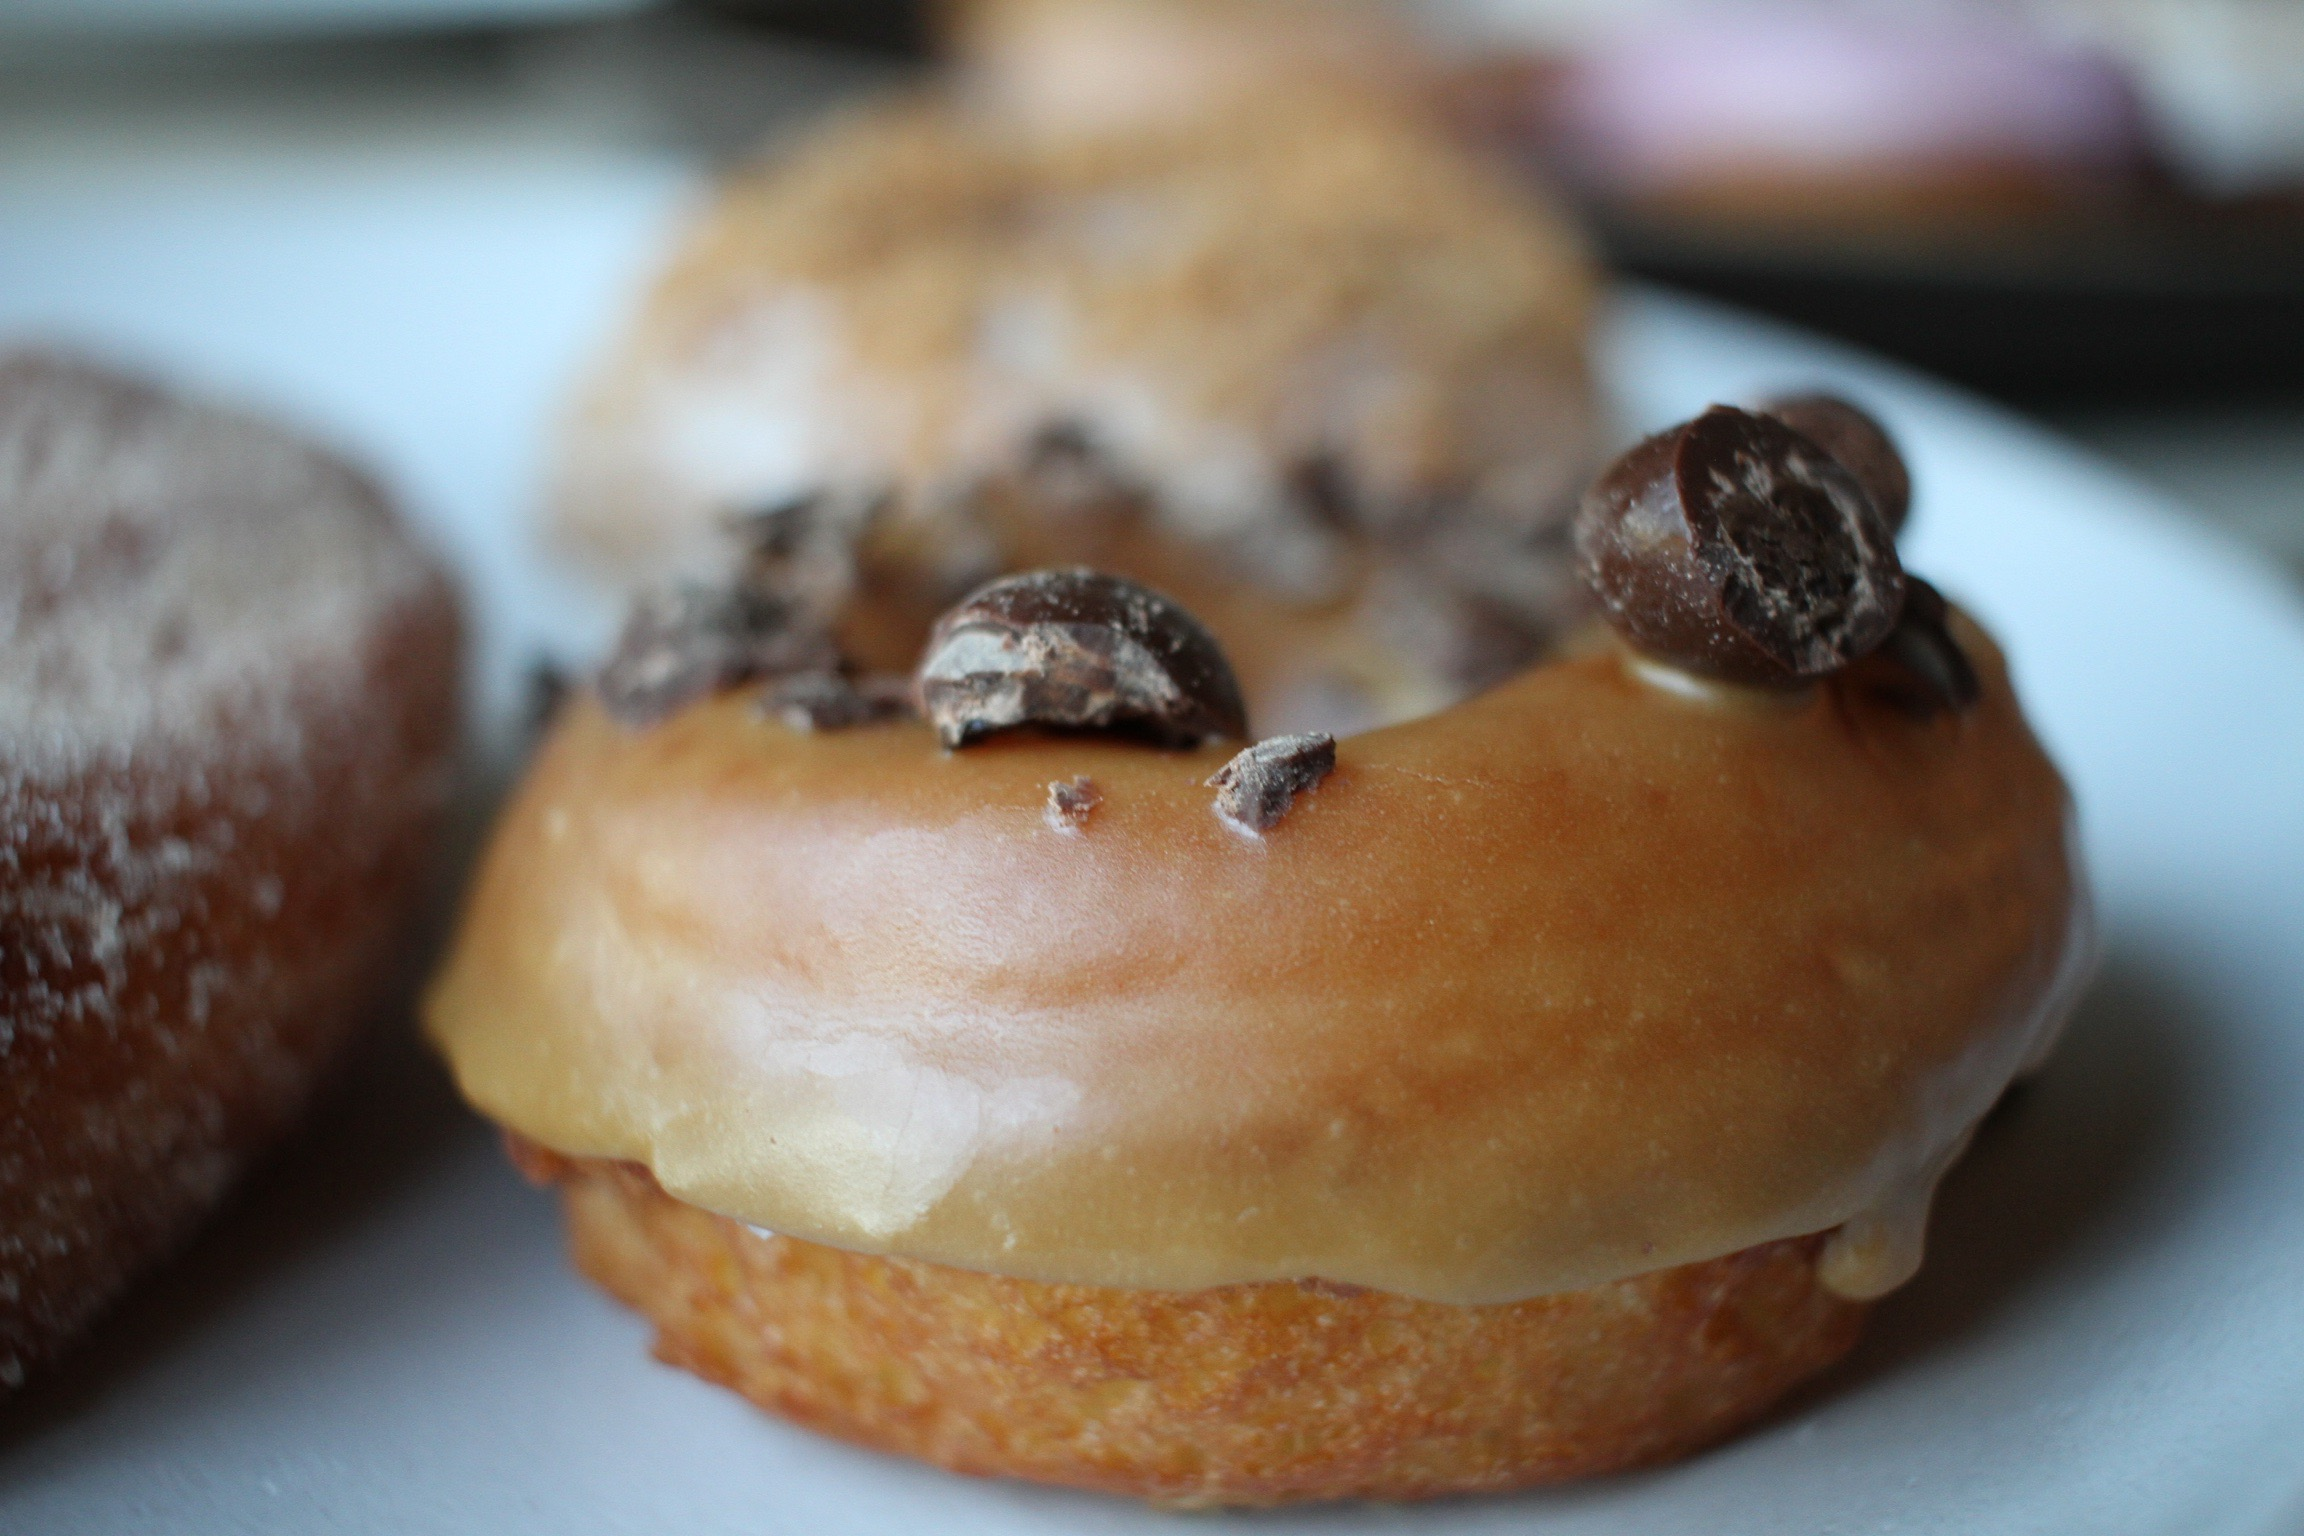 raised donut with glaze and chocolate pieces